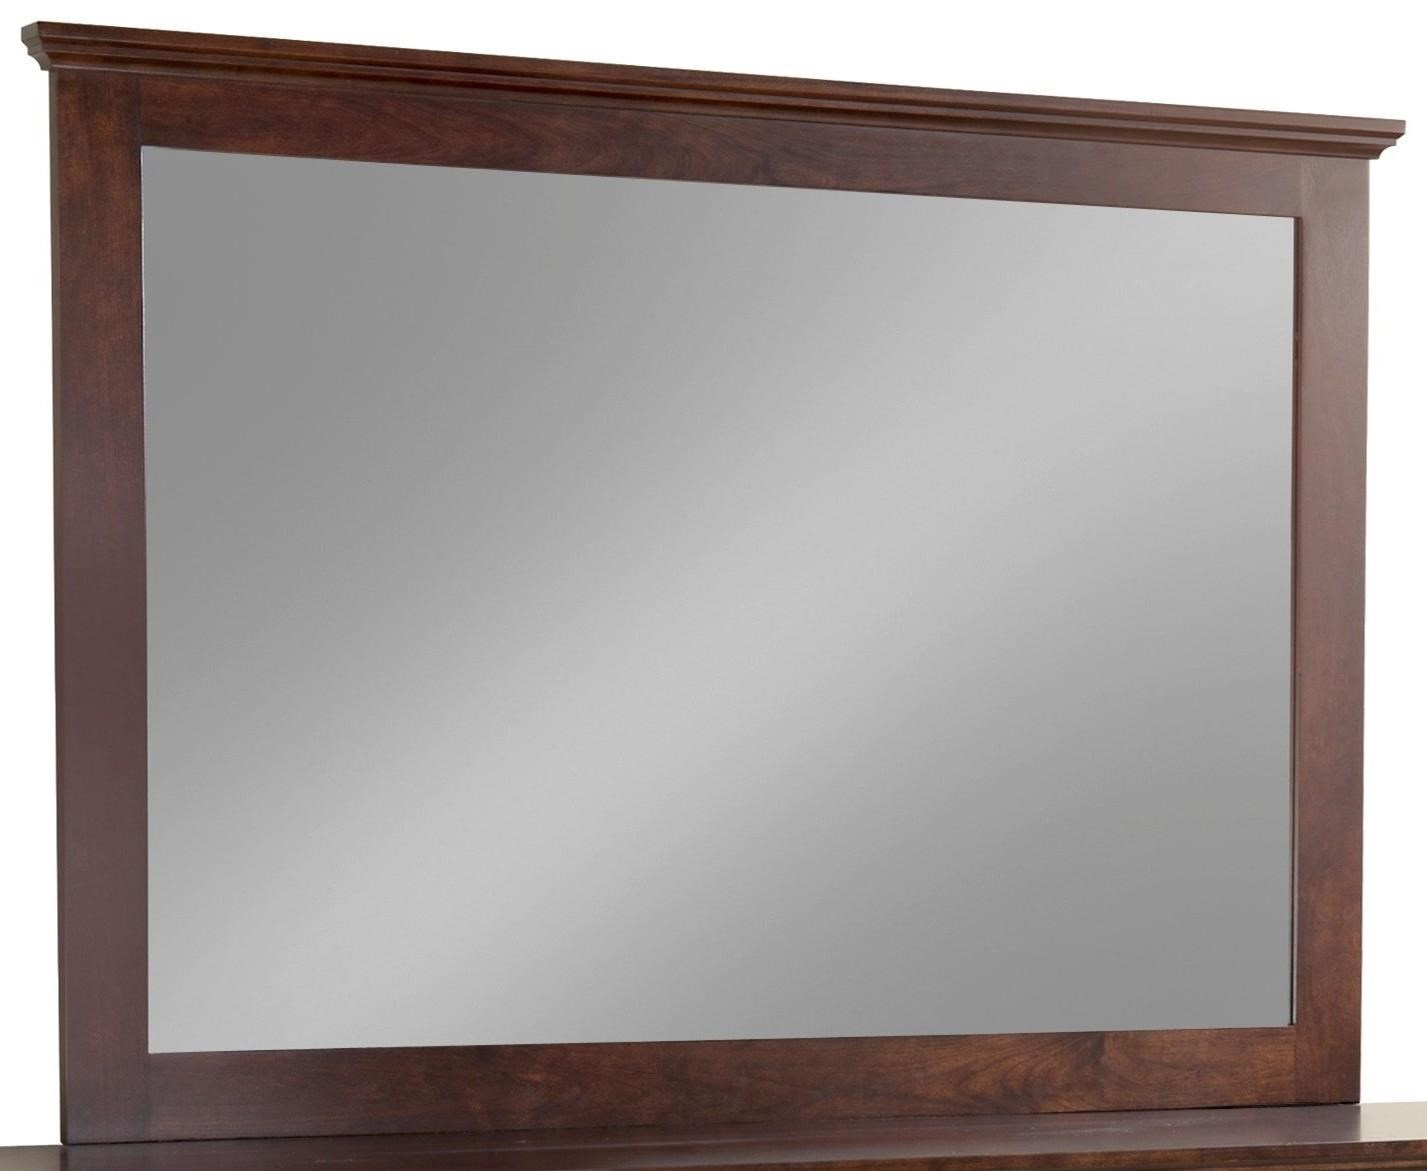 Elegance Tall Wide Mirror by Daniel's Amish at Rotmans